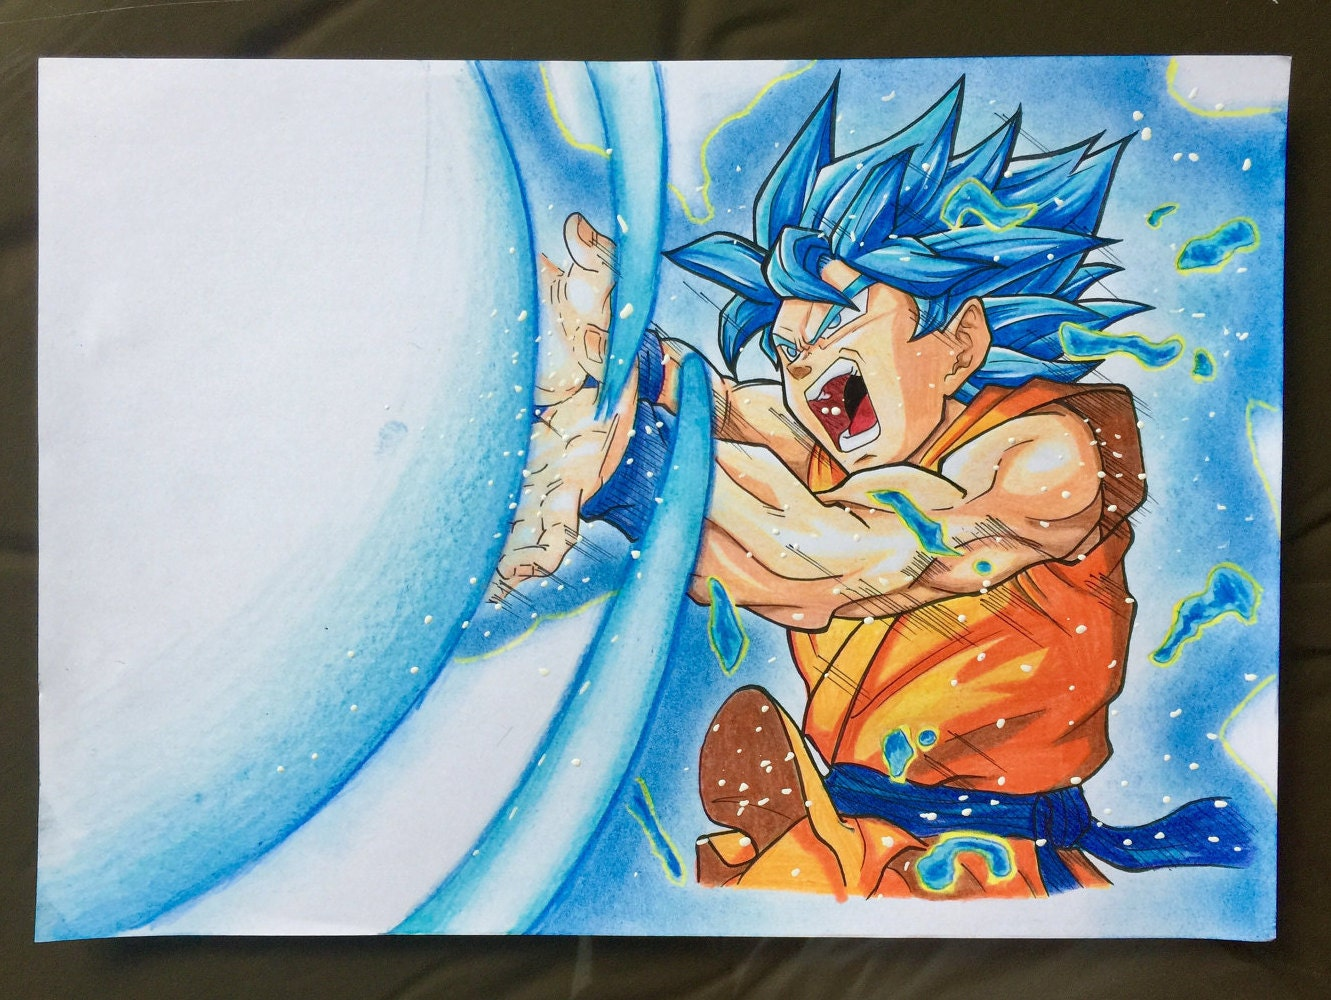 Goku Super Saiyan Blue Kamehameha Hand Illustration